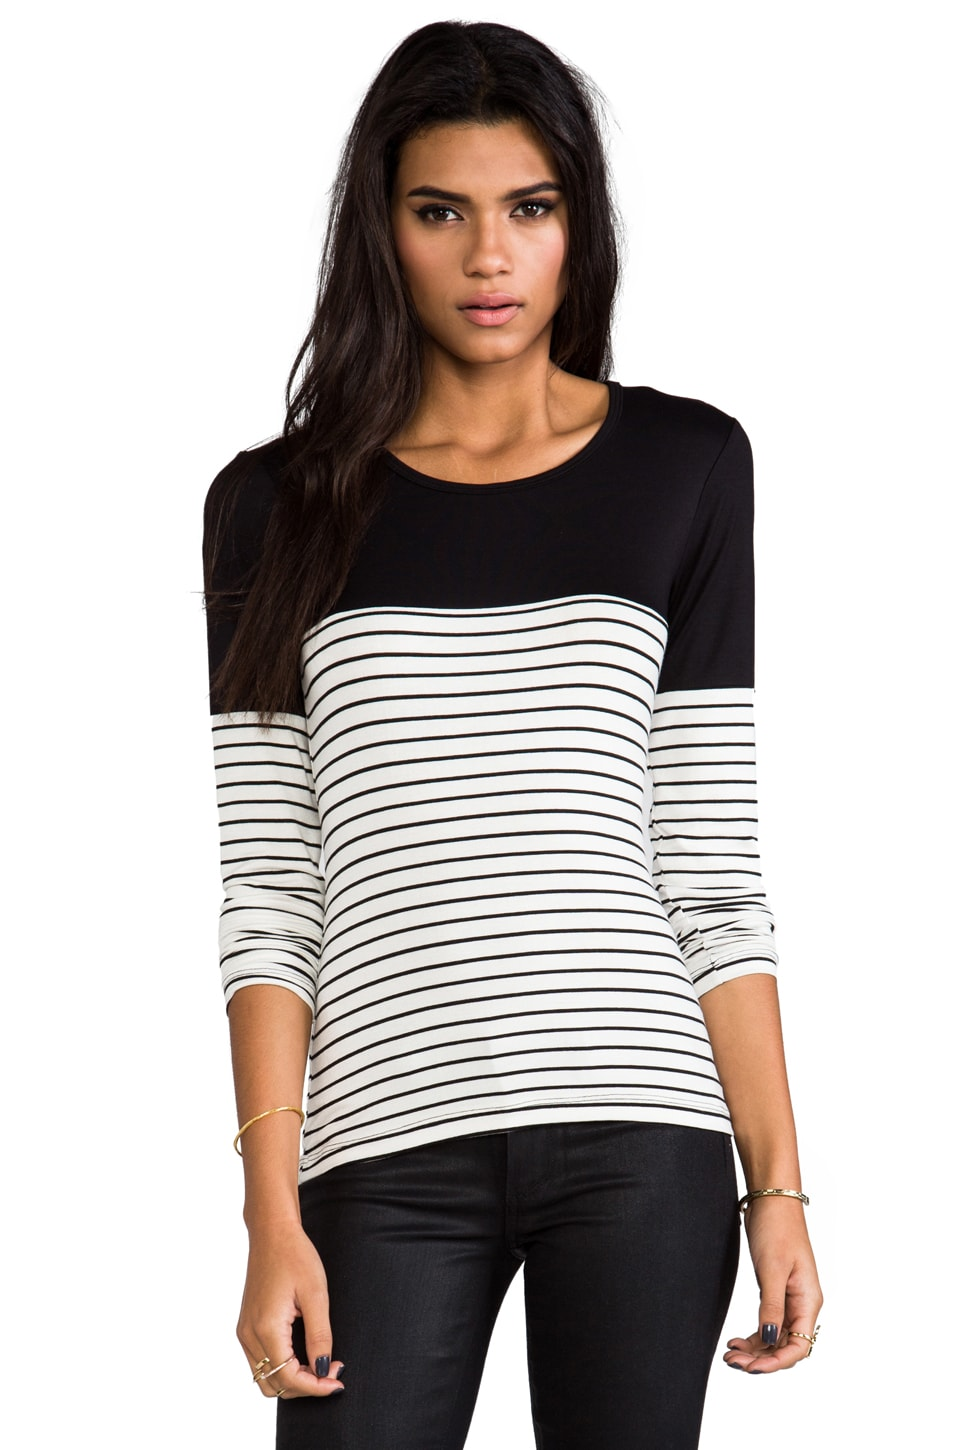 Kain Hunting Long Sleeve Tee in Black with White & Black Stripe